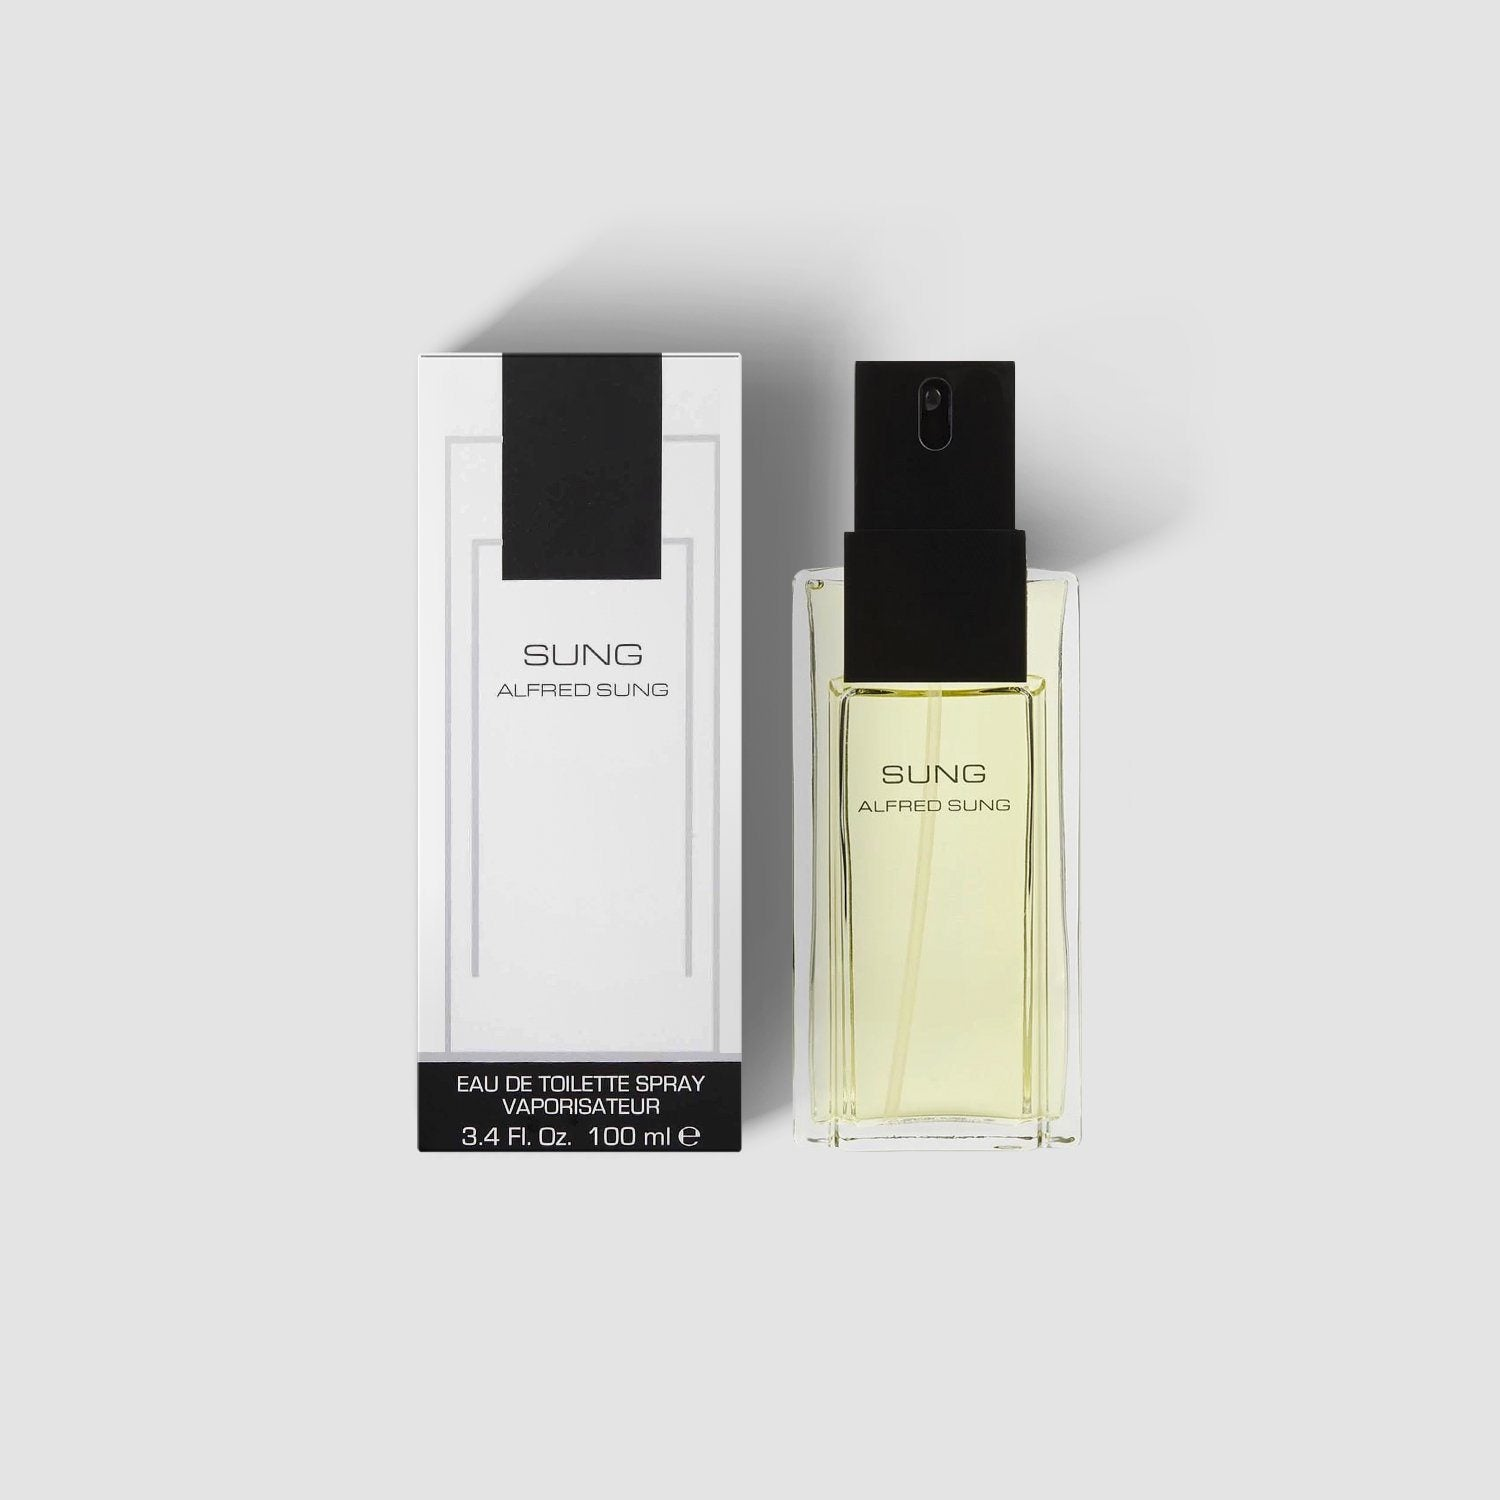 Sung Eau De Toilette Spray for Women - AromaFi.com